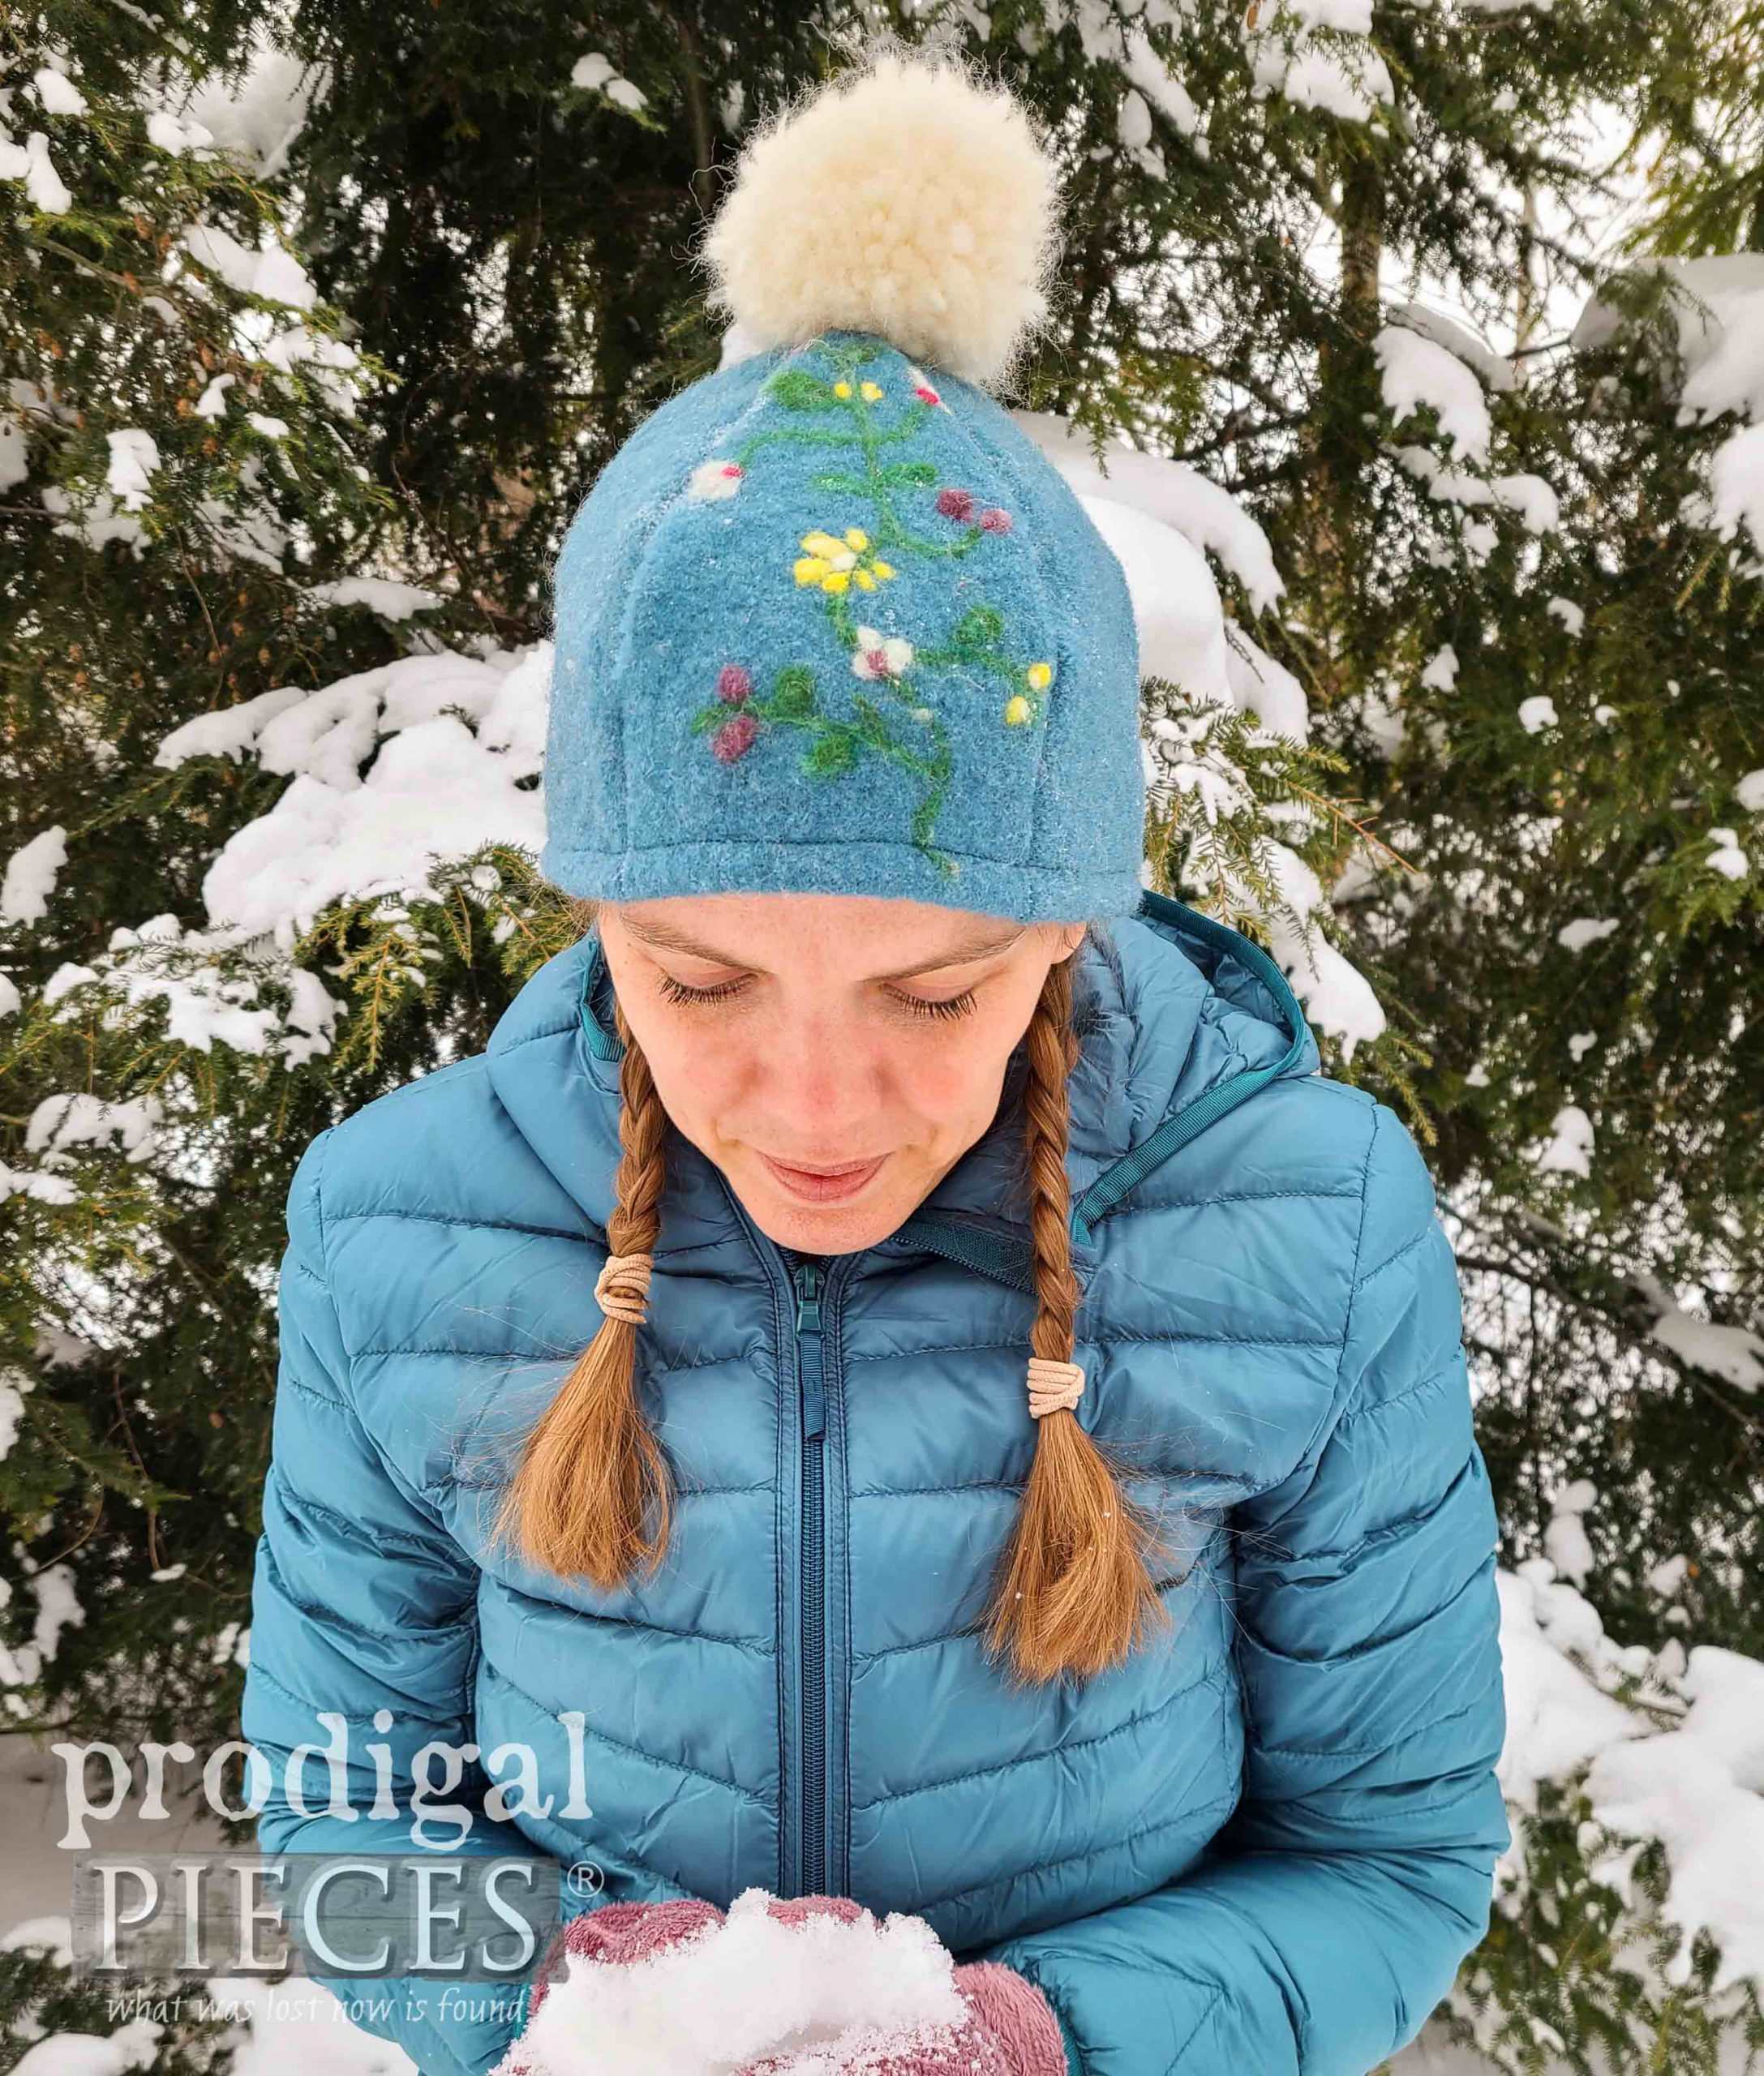 Handmade Embroidered Felted Wool Hat by Larissa of Prodigal Pieces | prodigalpieces.com #prodigalpieces #hat #fashion #handmade #wool #upcycled